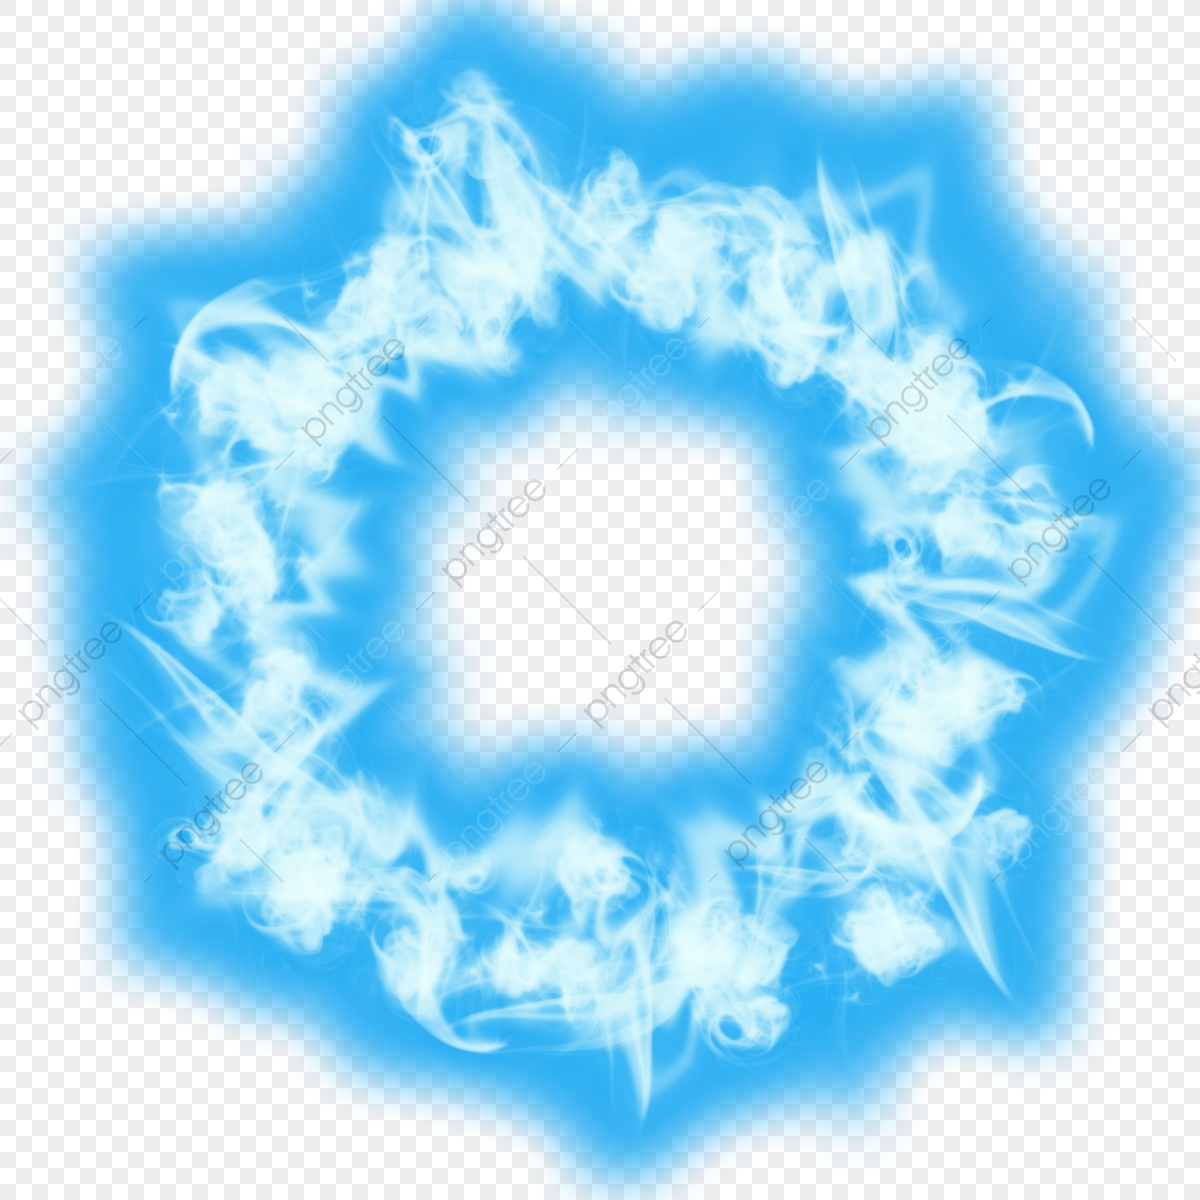 Blue Ring Of Fire, Ring Of Fire, Magic Effect, Speacial